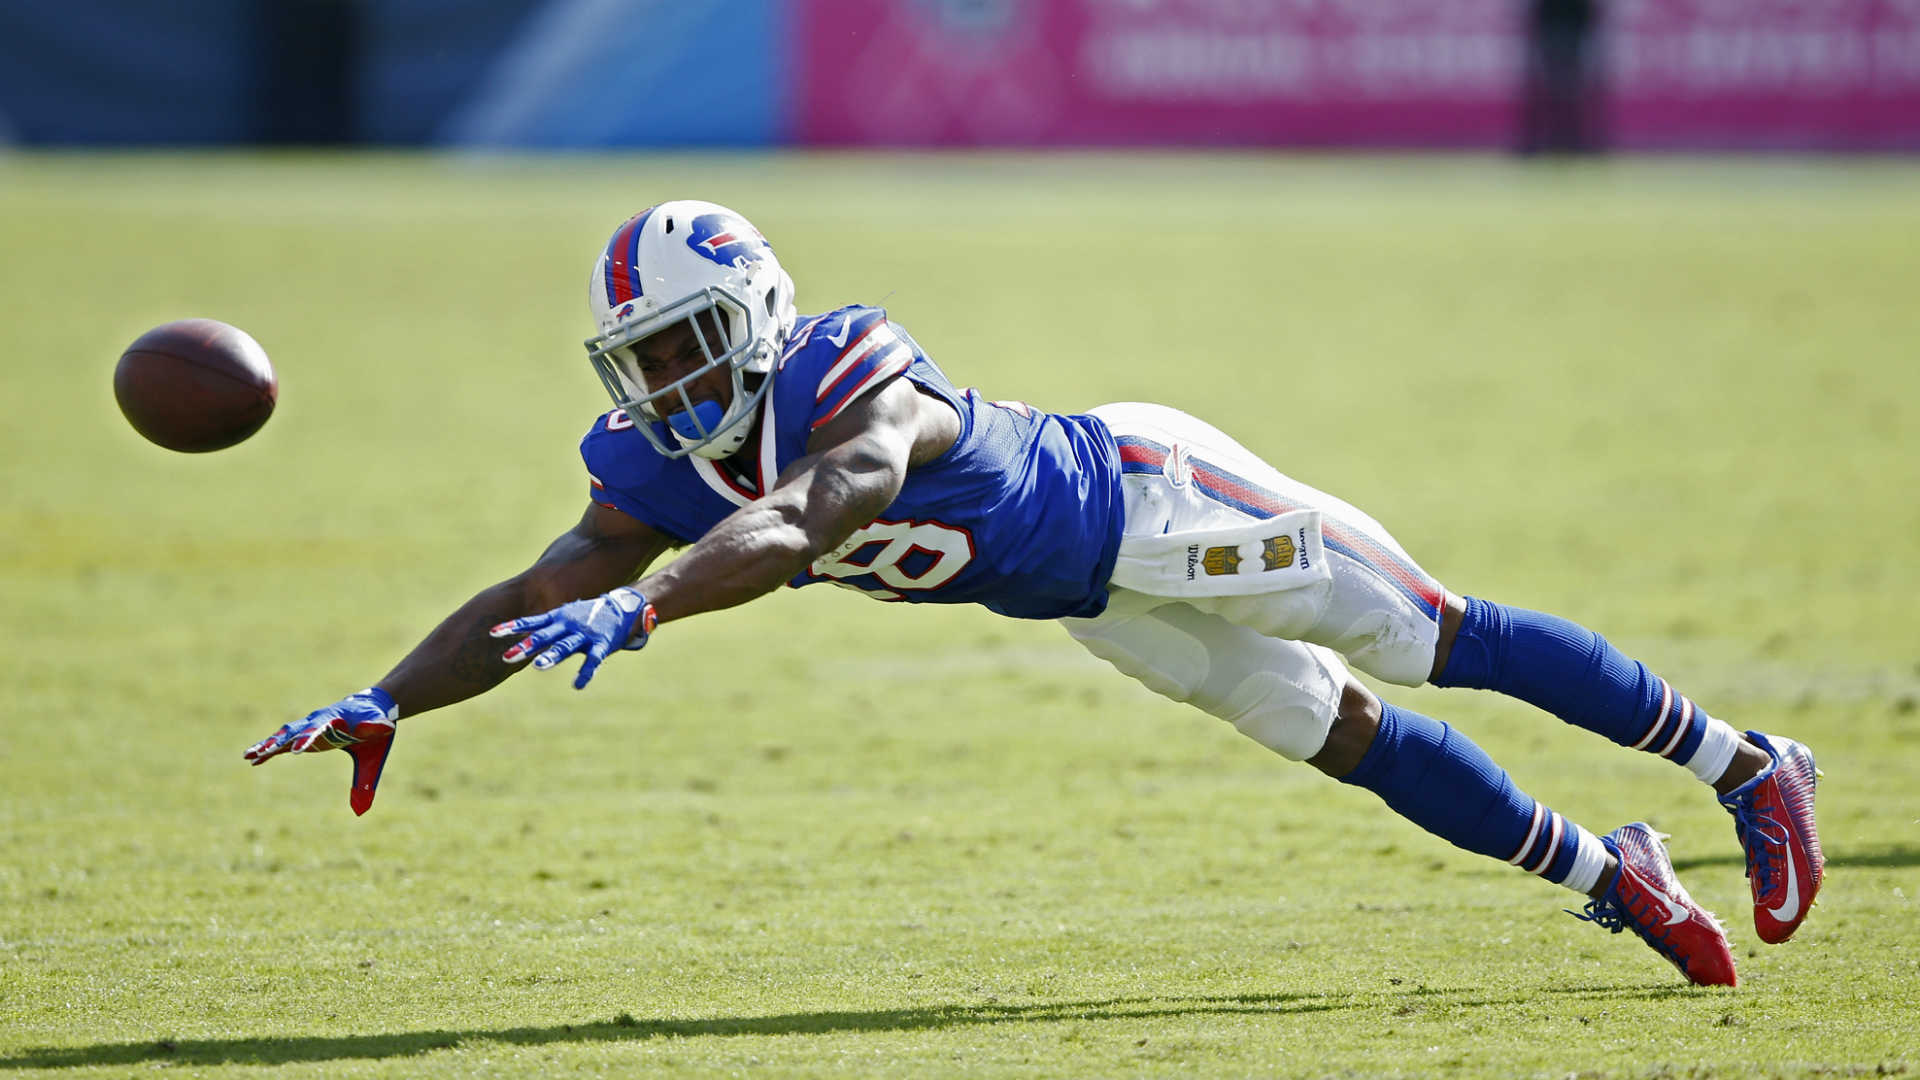 Bills WR Percy Harvin